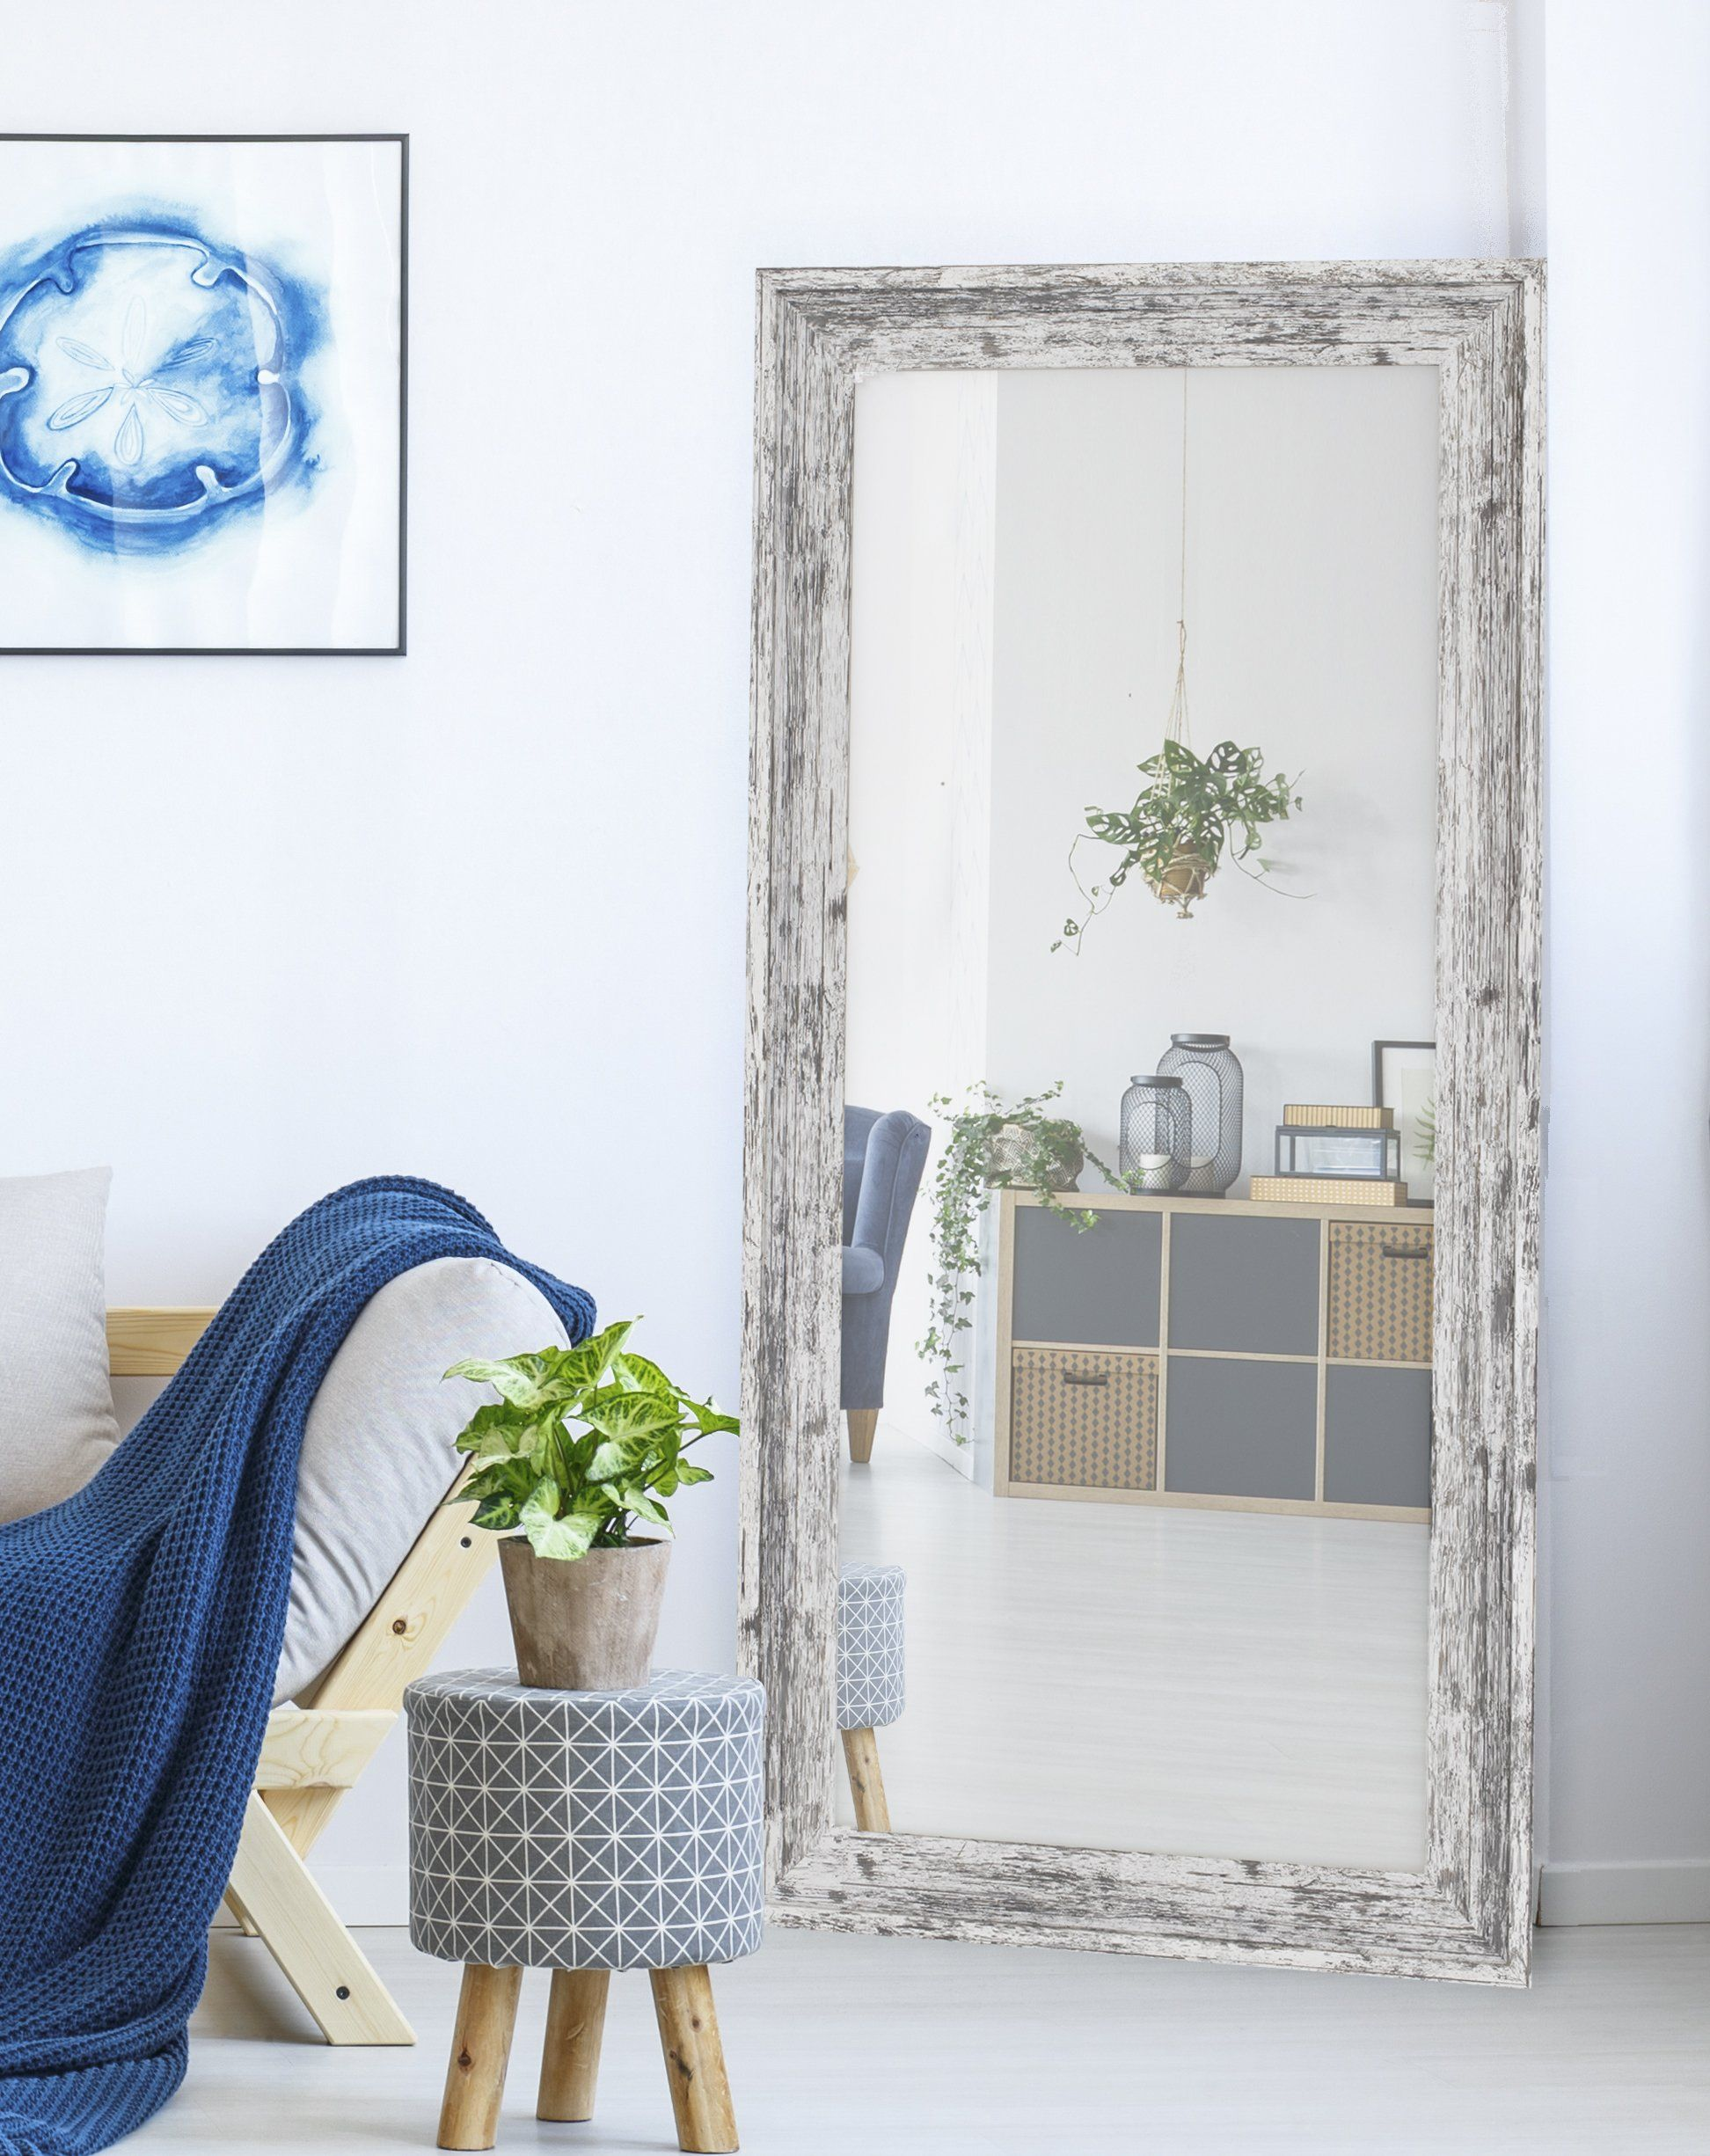 Hitchcock Butterfield Farmstead White Wall Mirror Walmart Com White Mirror White Wall Mirrors White Room Decor